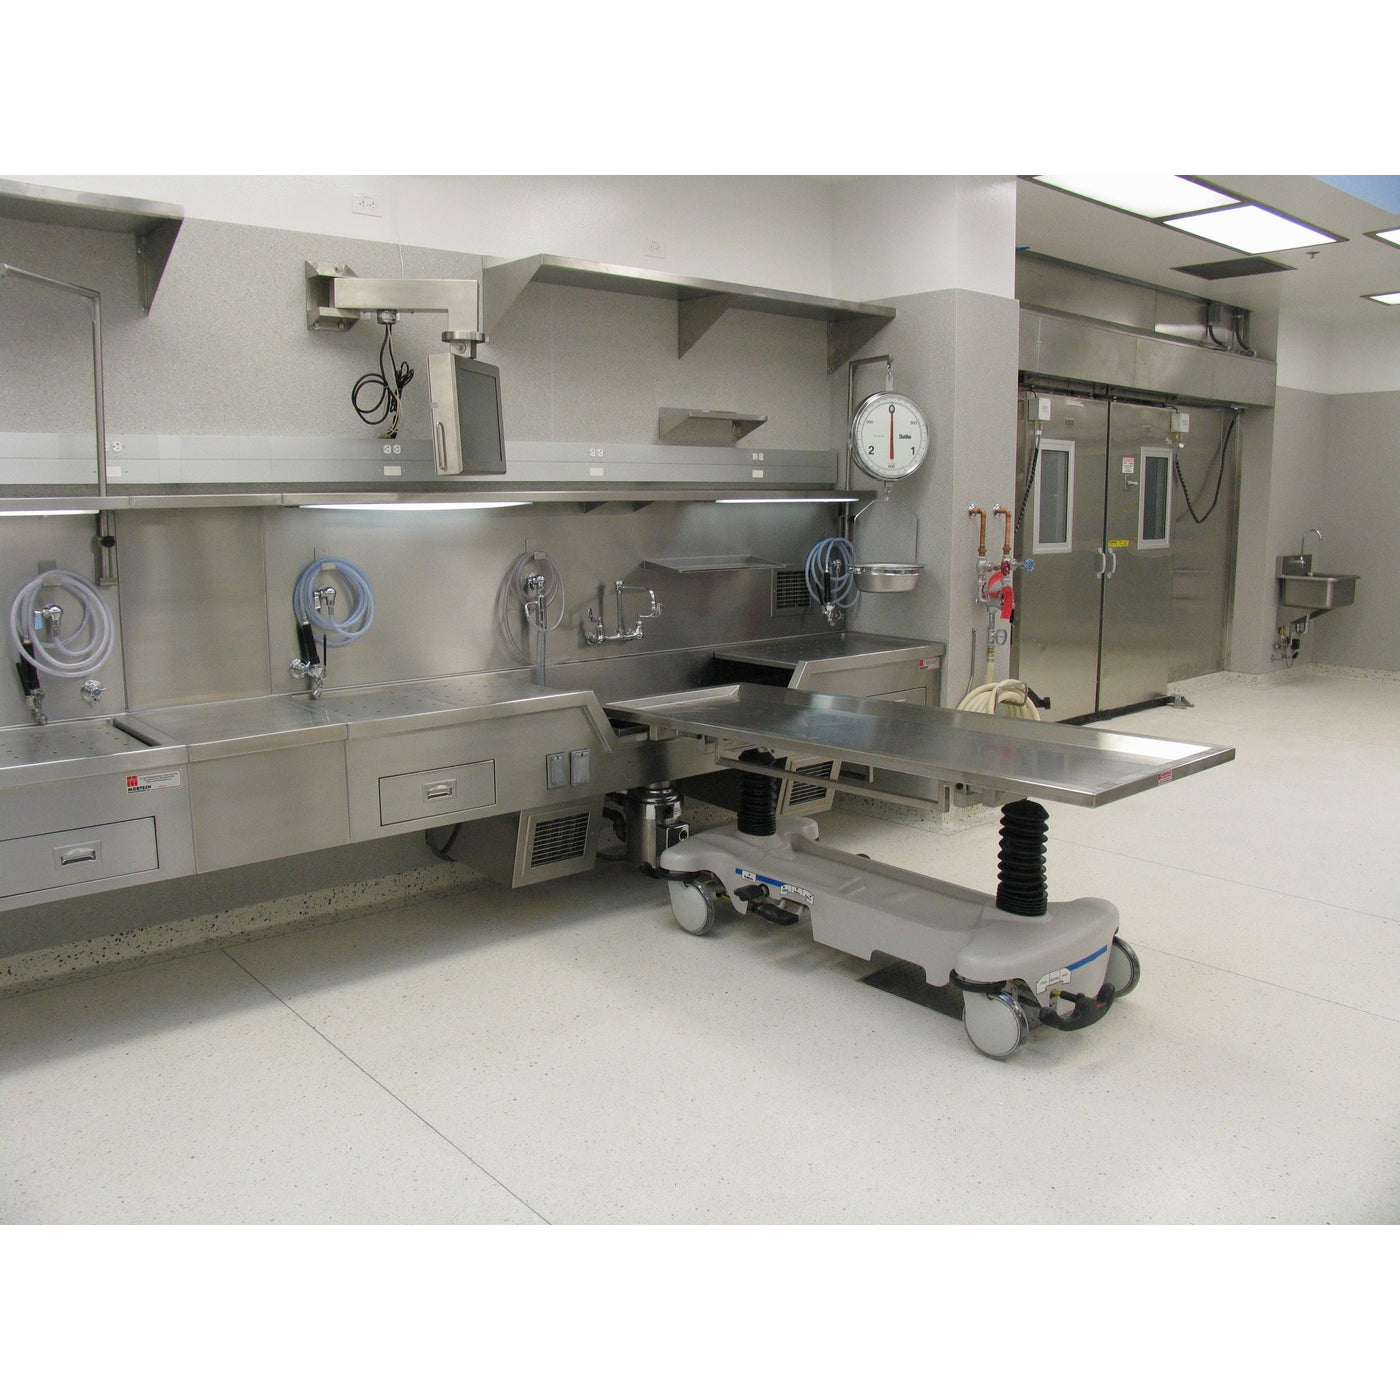 600015-H Hydraulic Autopsy Carrier-Body Transporter-Mortech Manufacturing Company Inc. Quality Stainless Steel Autopsy, Morgue, Funeral Home, Necropsy, Veterinary / Anatomy, Dissection Equipment and Accessories